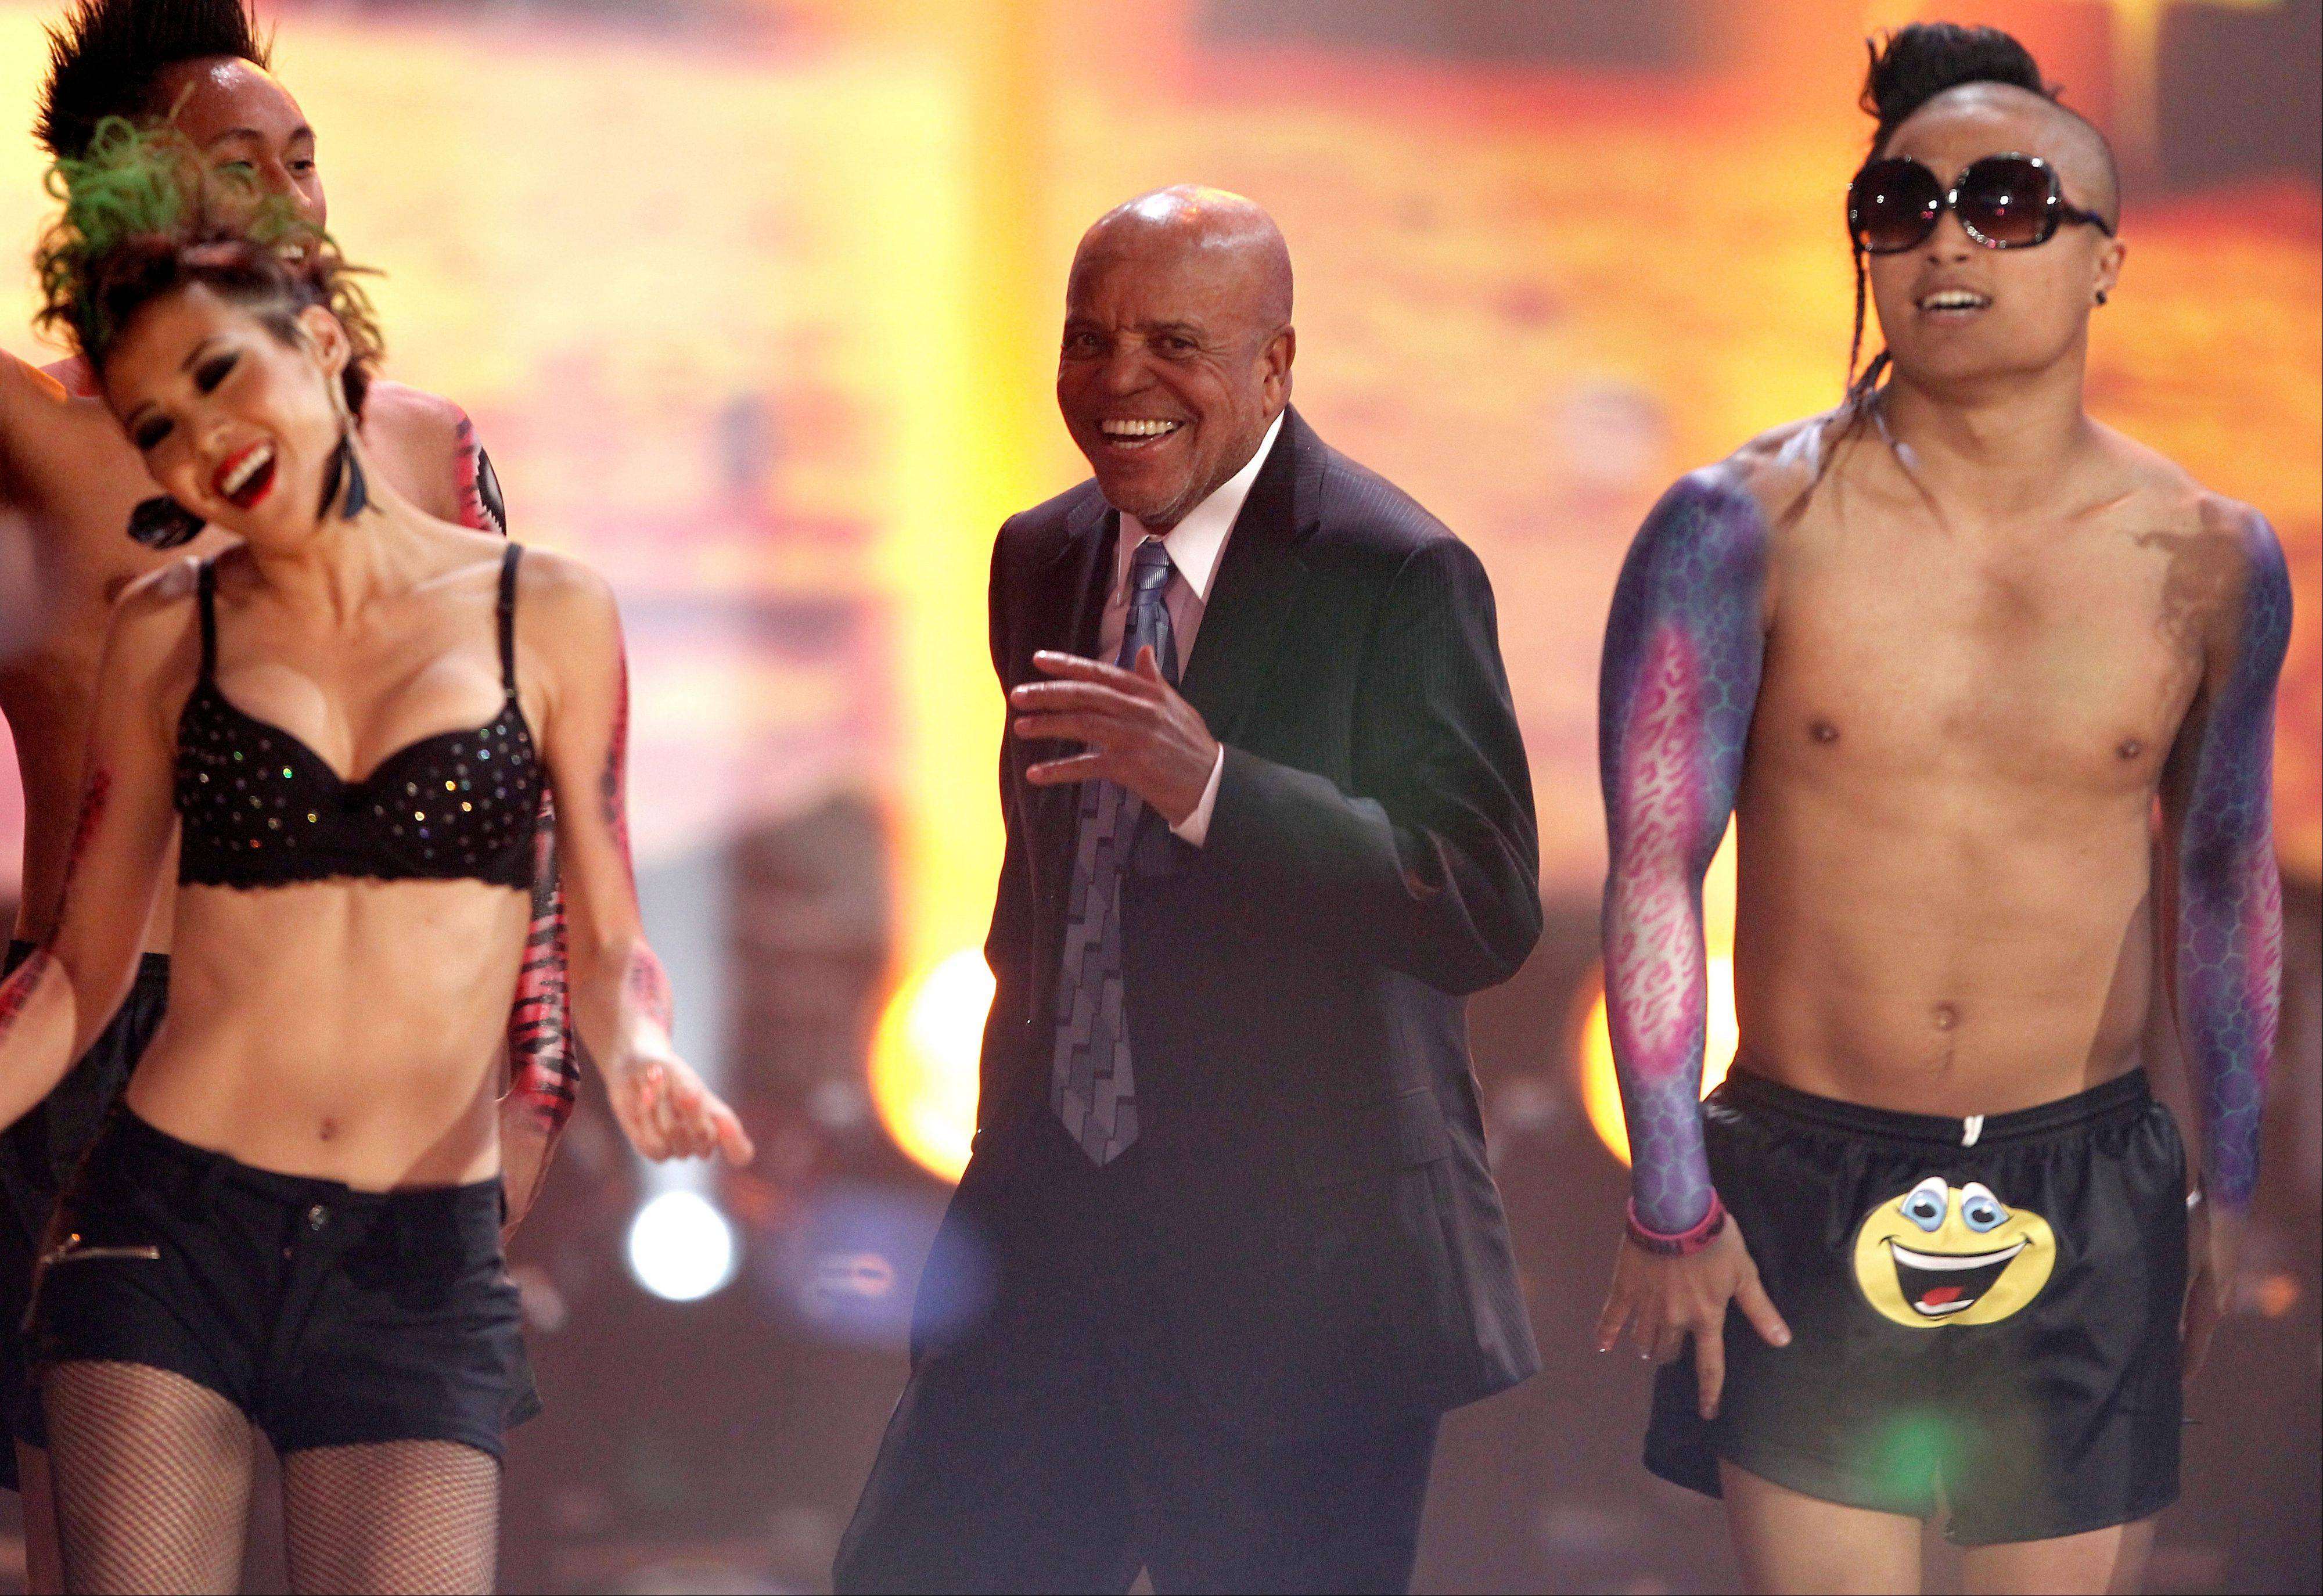 Berry Gordy, center, dances onstage while LMFAO performs at the 39th Annual American Music Awards on Sunday, Nov. 20, 2011 in Los Angeles.